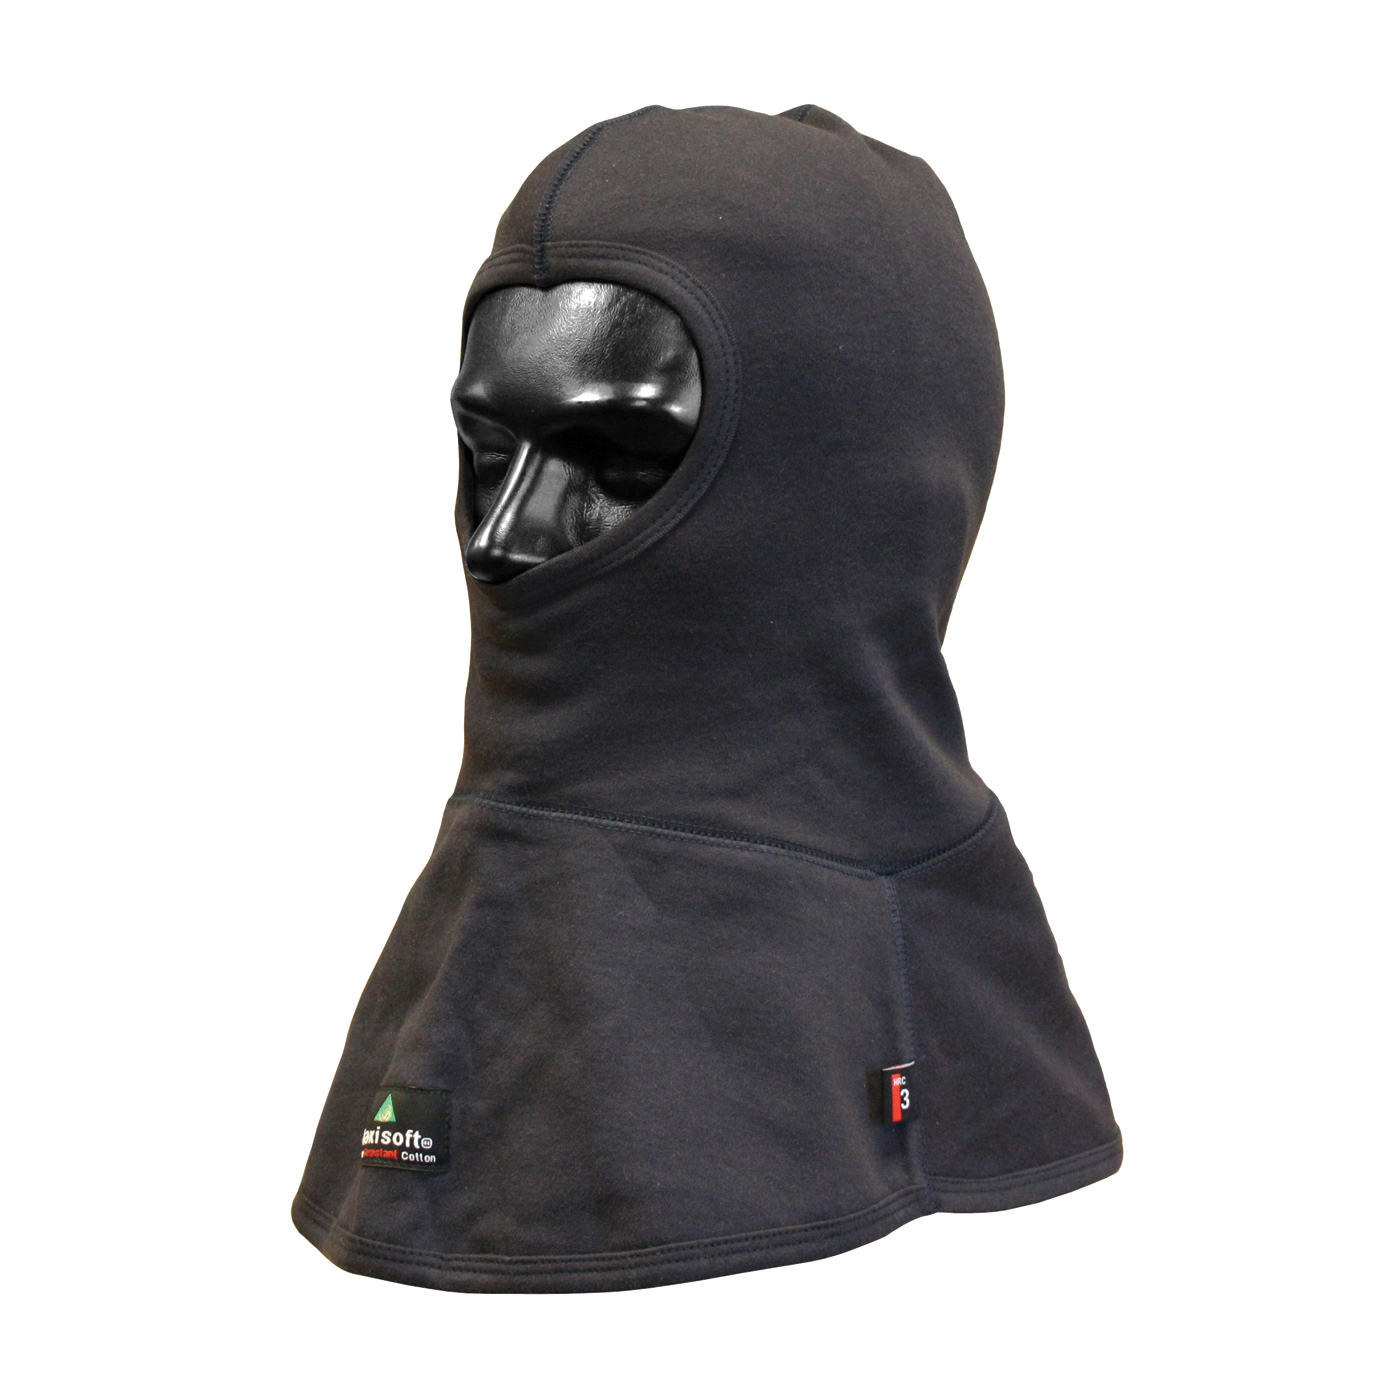 PIP® 385-HDFR-13-(NV) Double Layer Arc and Flame Resistant Balaclava, Universal, Navy Blue, 10-1/2 in L, 86% Cotton/14% Nylon, 13 oz Fabric, Full Face Closure